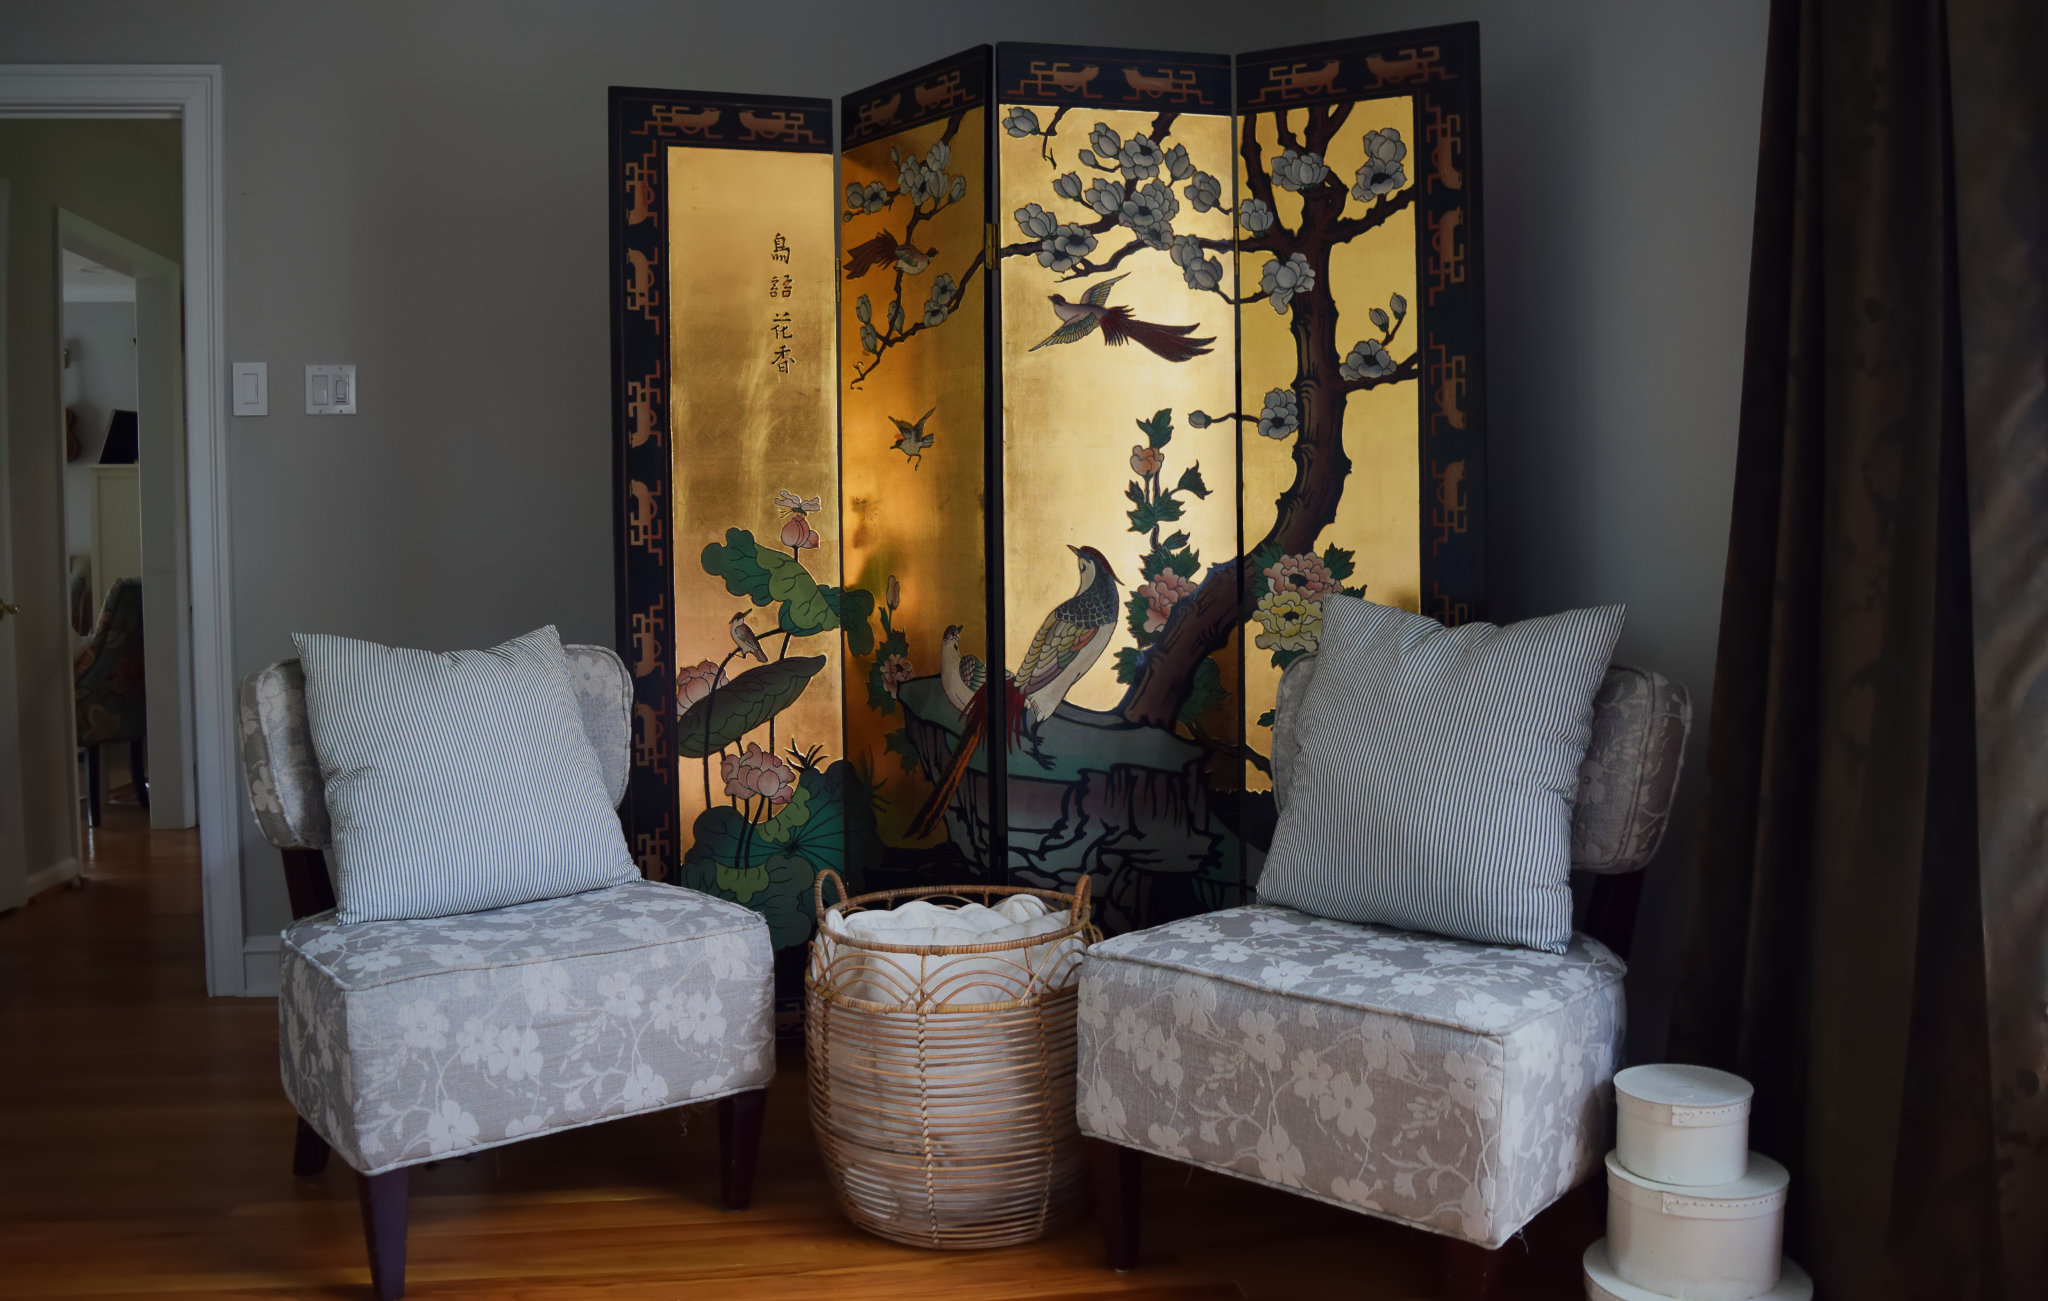 floral chairs and basket in front of gold chinoiserie coromandel floor screen hiding our elliptical